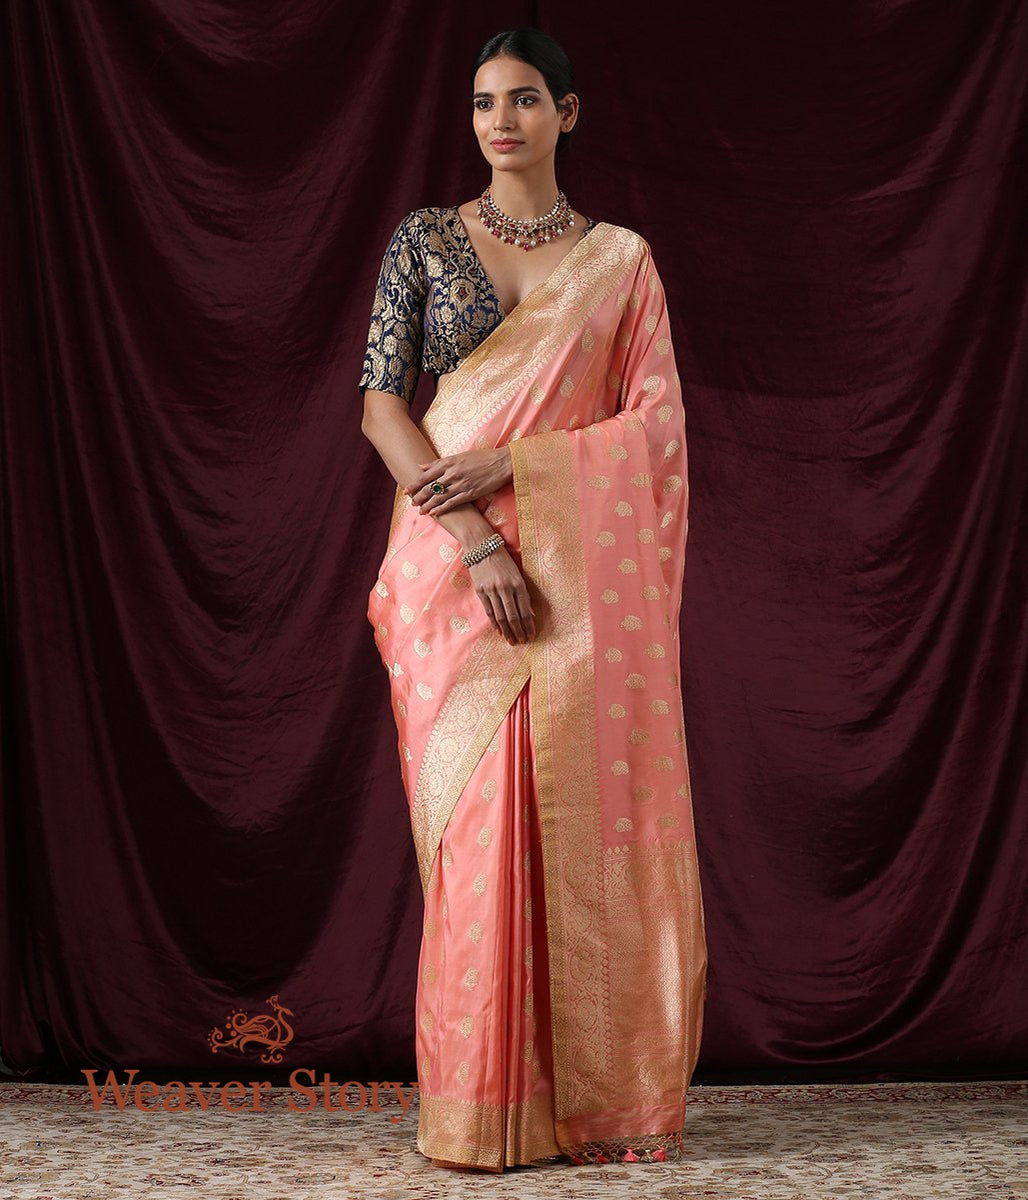 Handwoven Peach Banarasi Saree with Kairi Boota